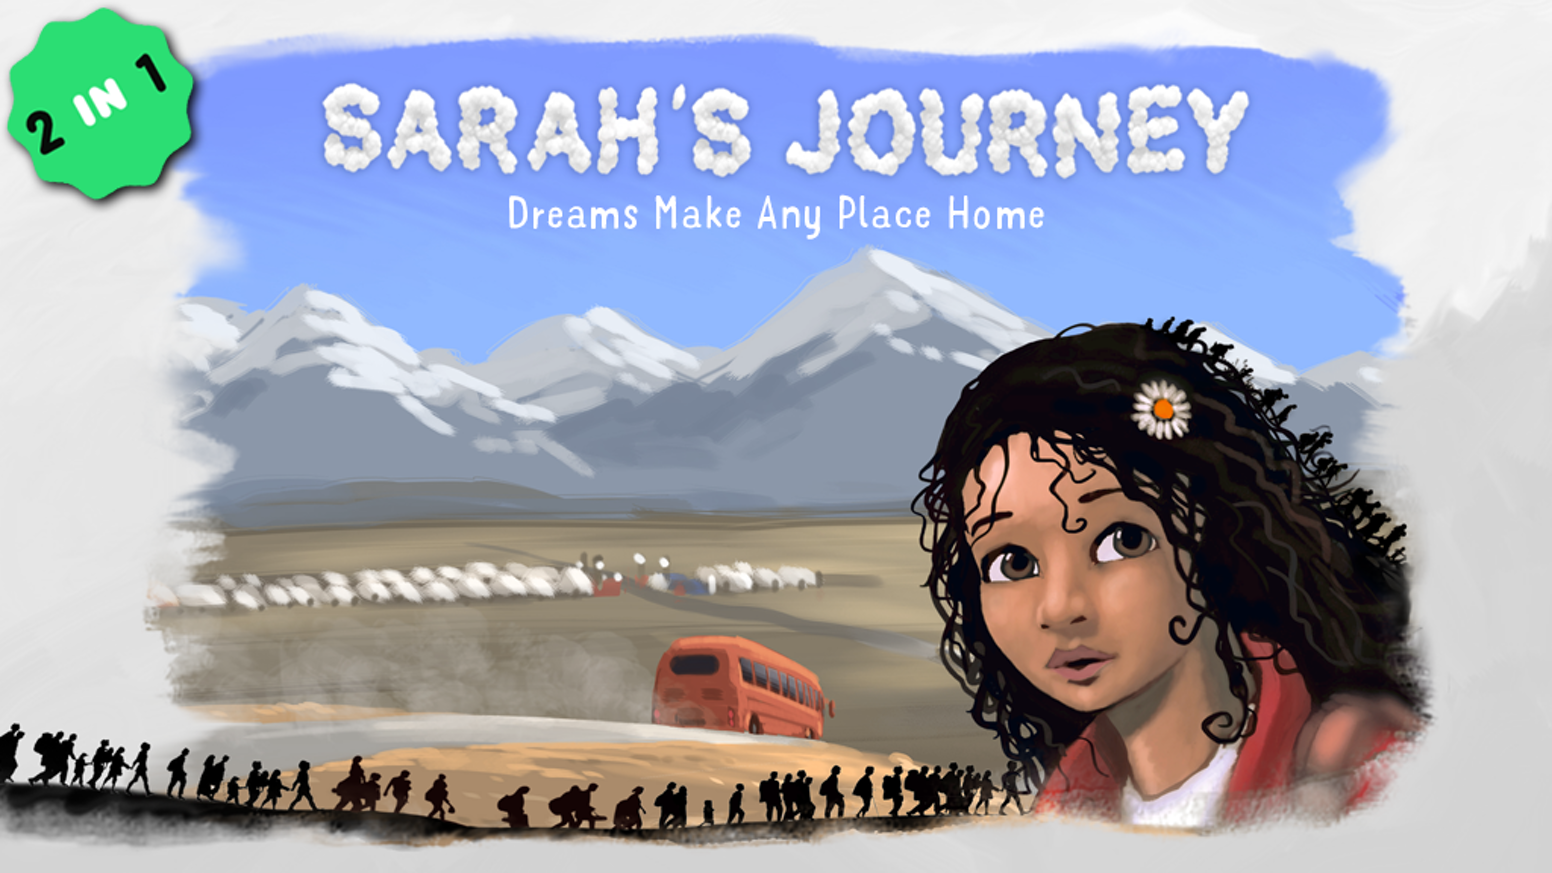 Sarah, the displaced hero, will empower your child to deal with hardships & will give displaced children hope and inspiration. GET&GIVE